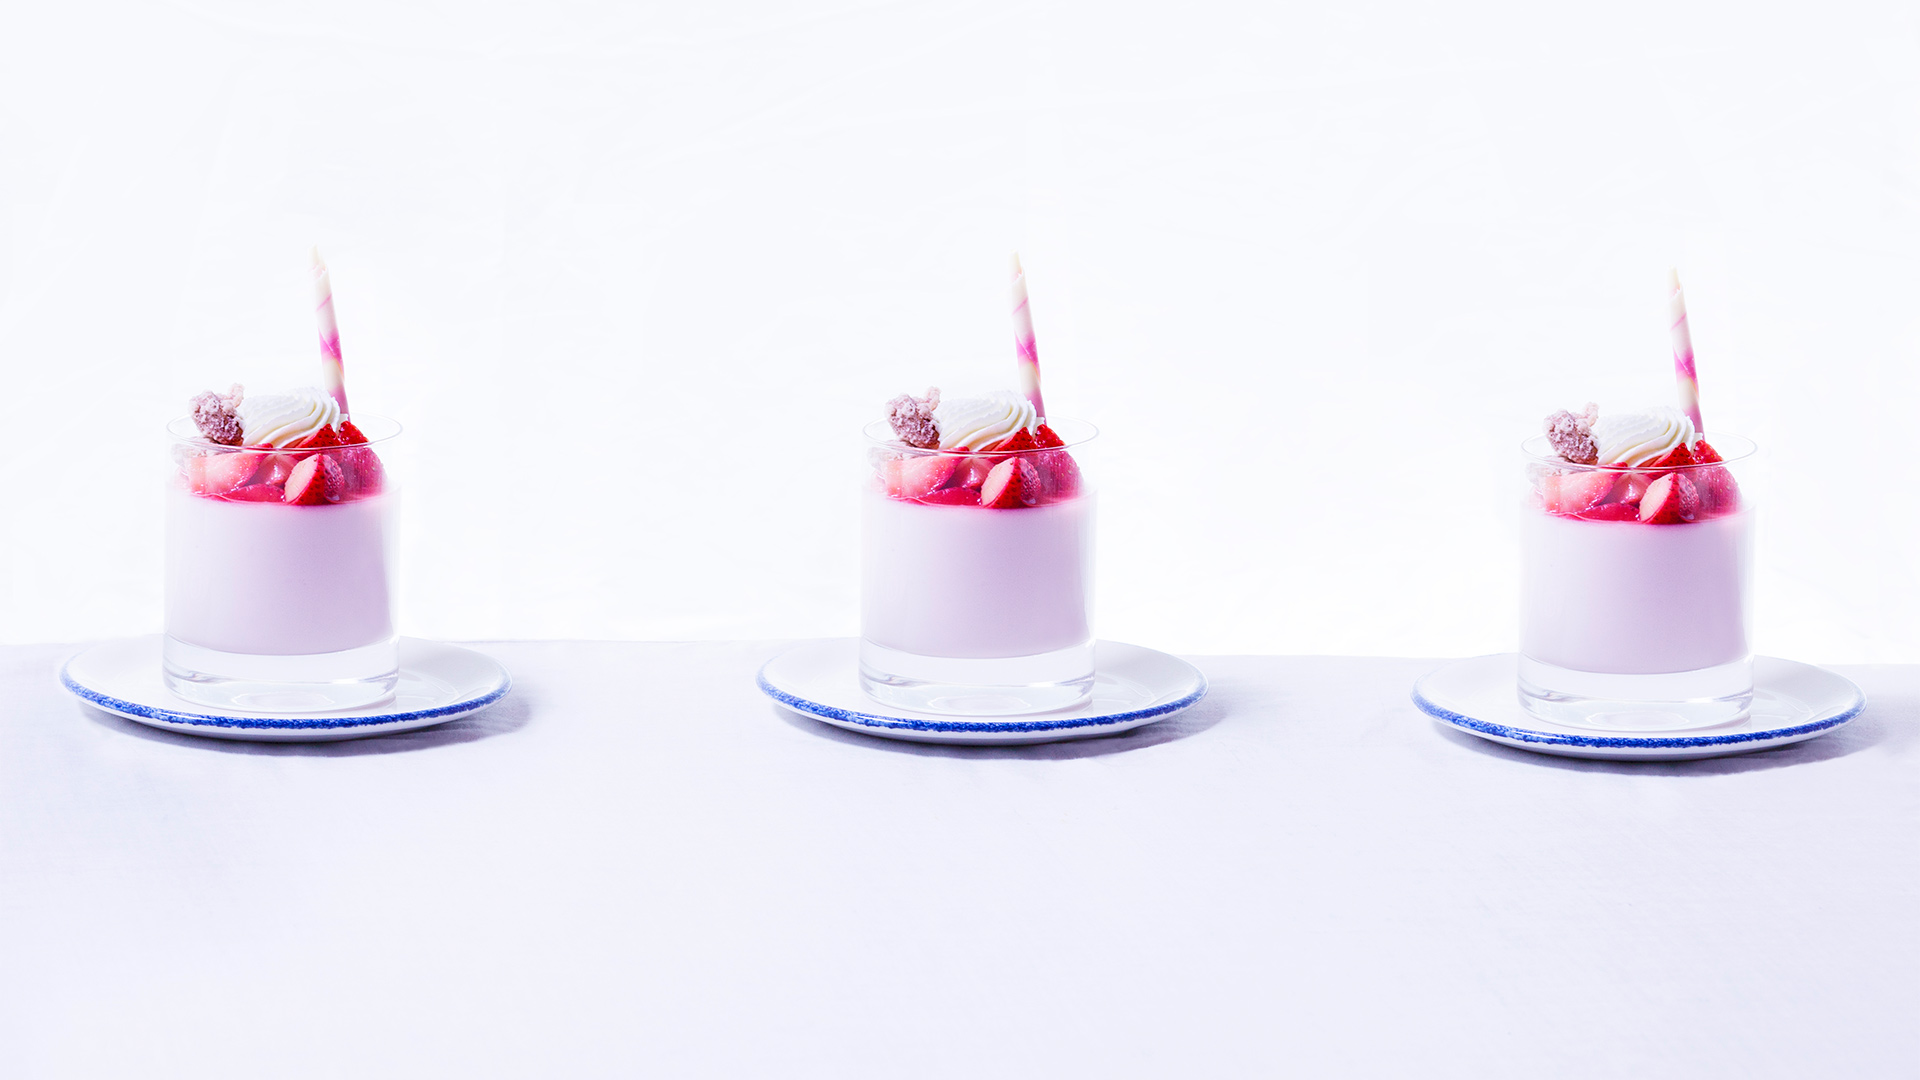 three pink strawberry desserts in a cup